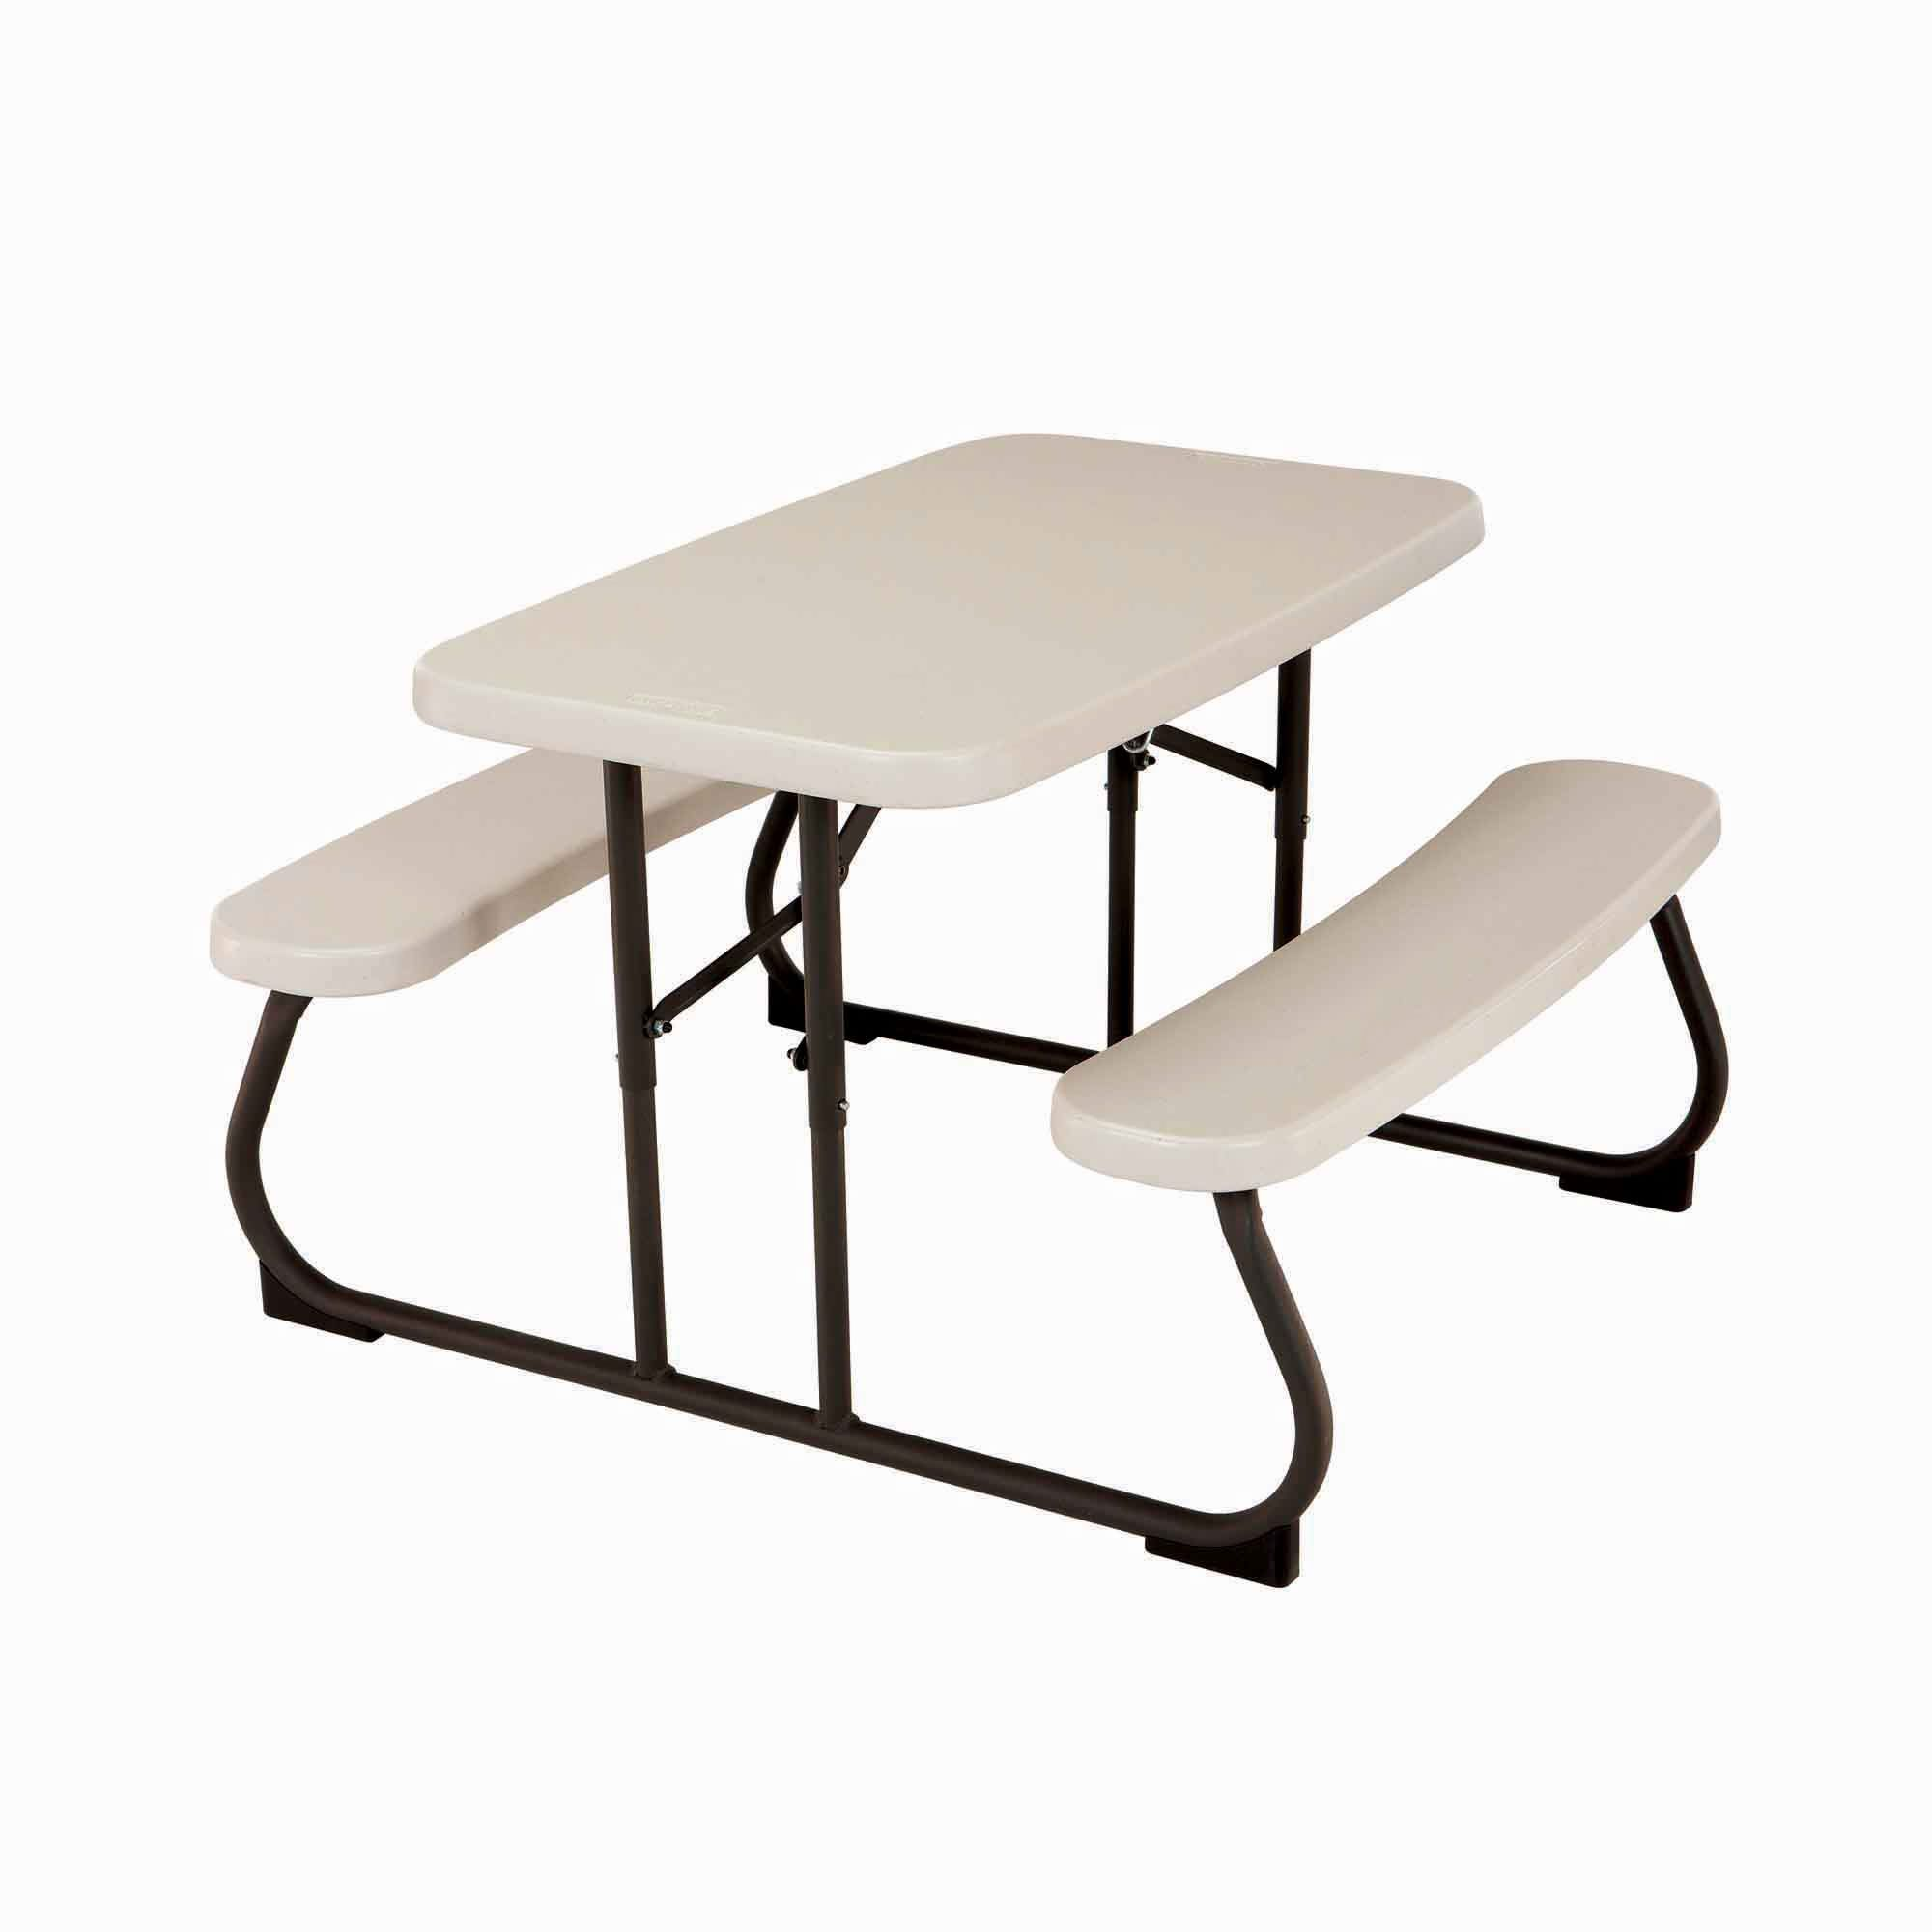 into and gallery lifetime down single a escape set decoration ideas of urban picnic tables folds folding table bench luxury collapsible